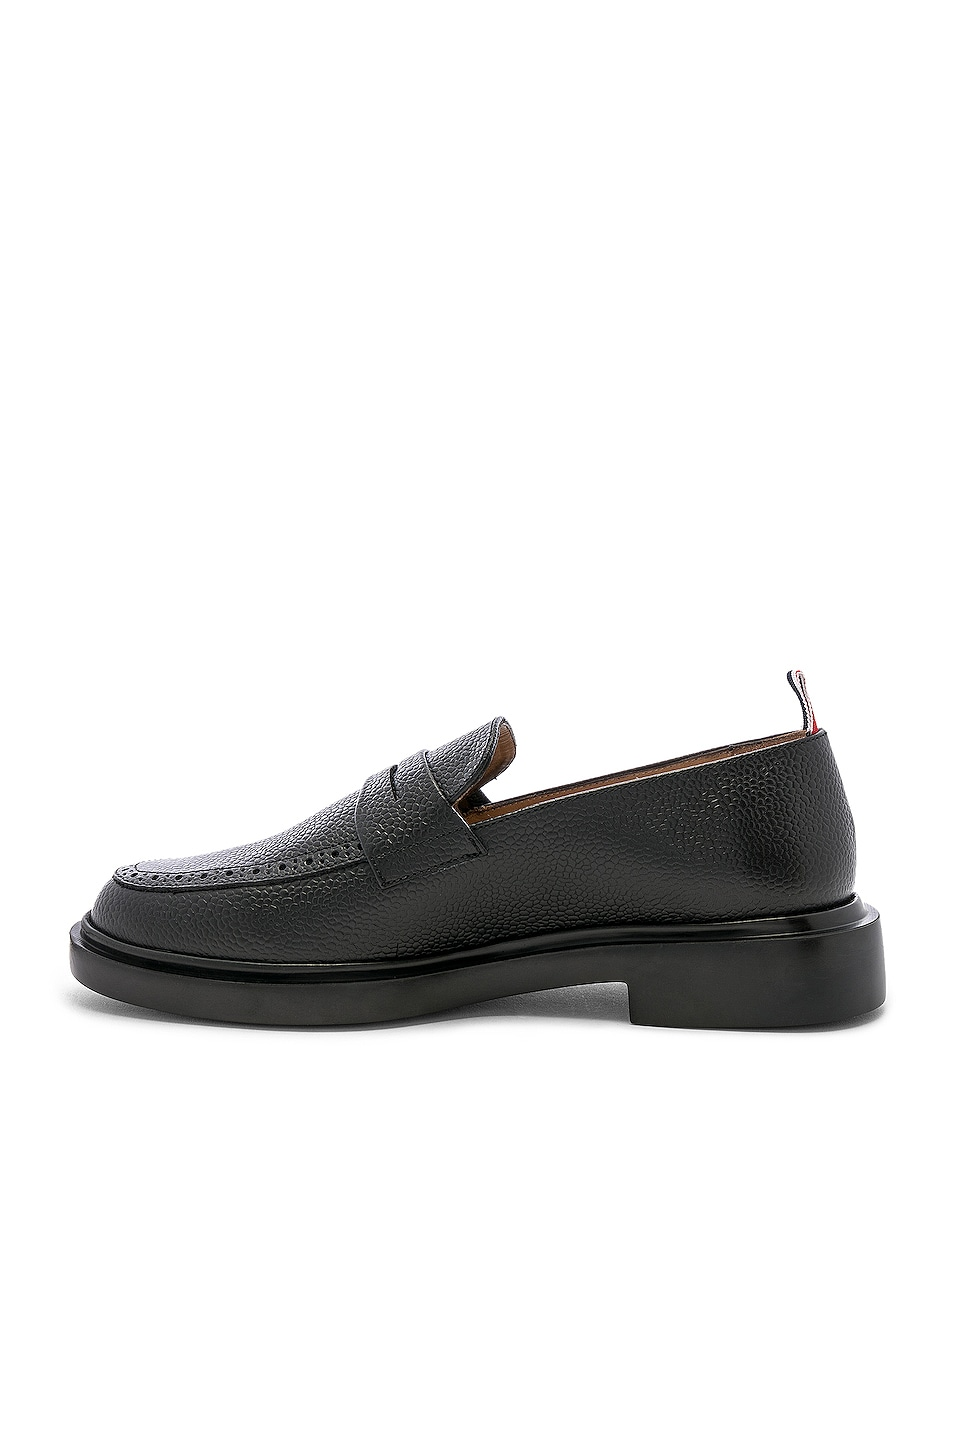 Image 5 of Thom Browne Rubber Sole Loafer in Black